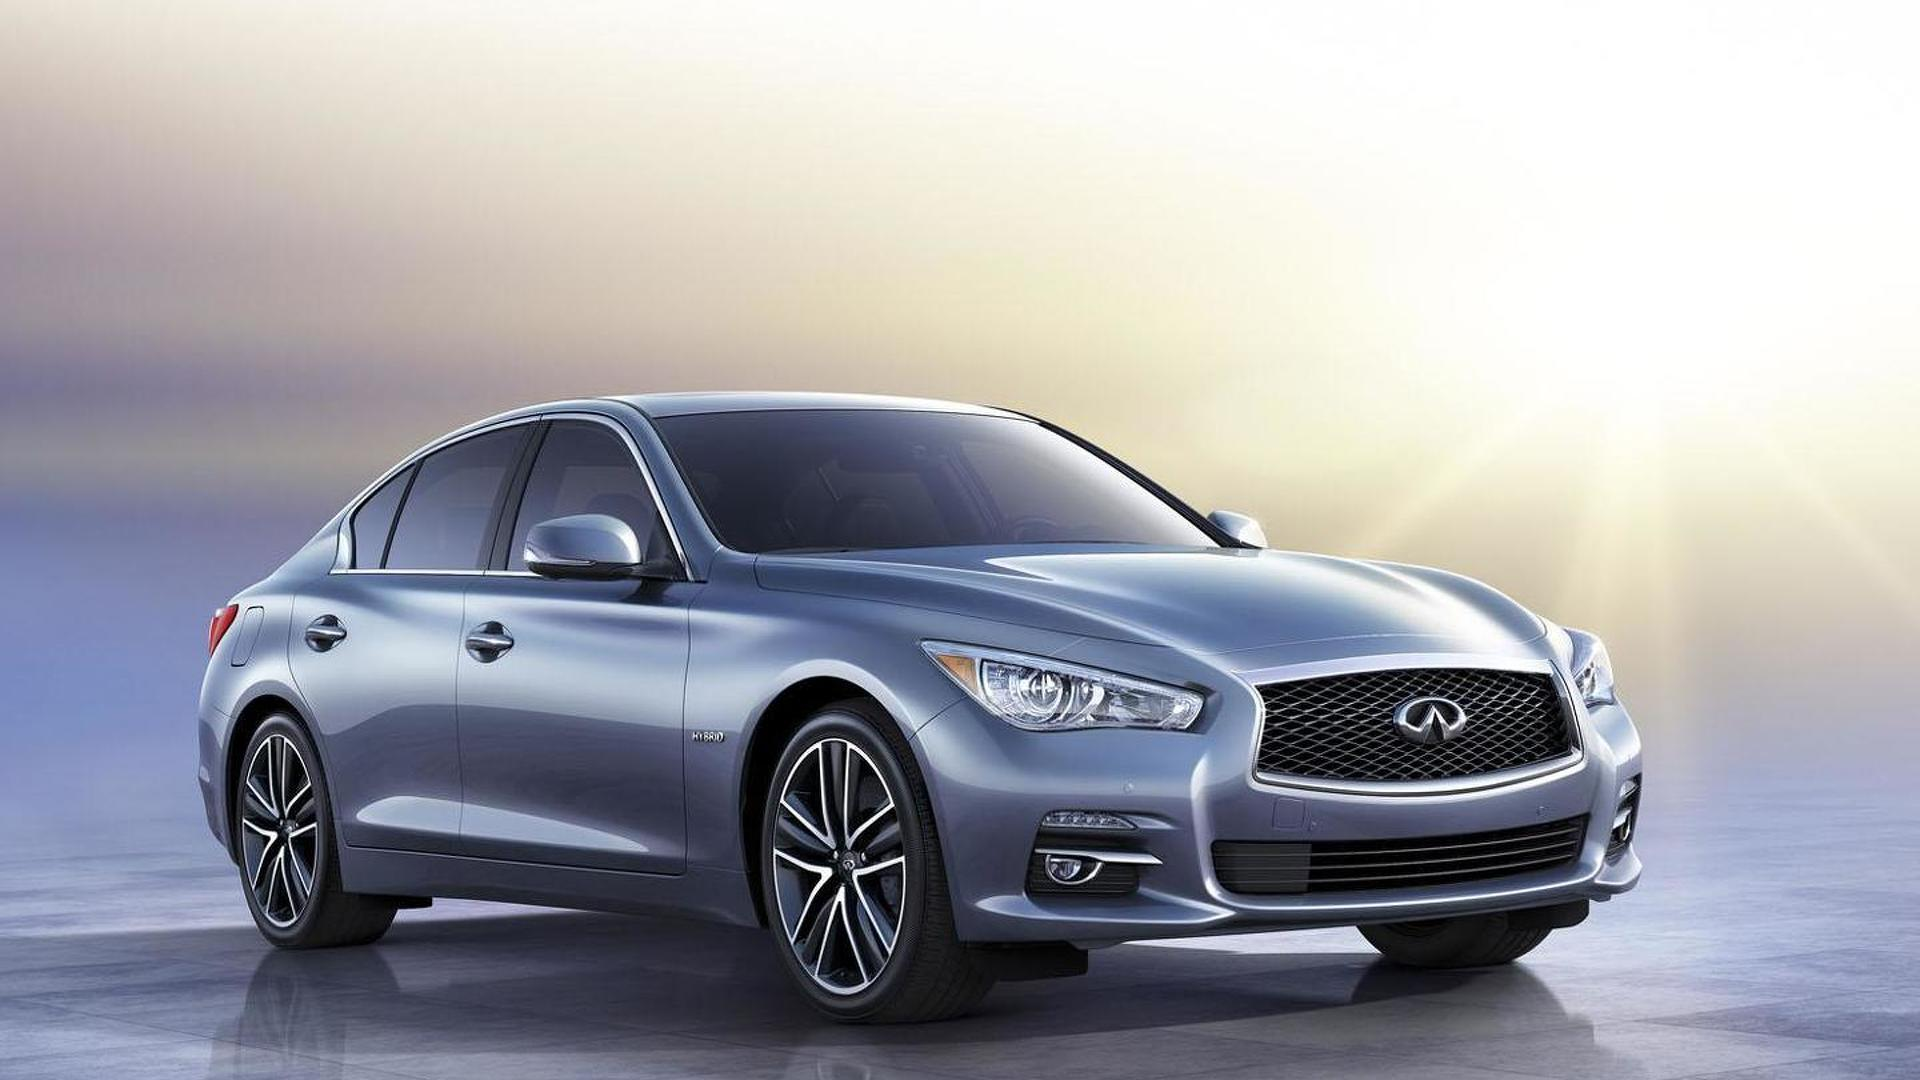 Infiniti Q50 headed to Geneva with Daimler-sourced engines